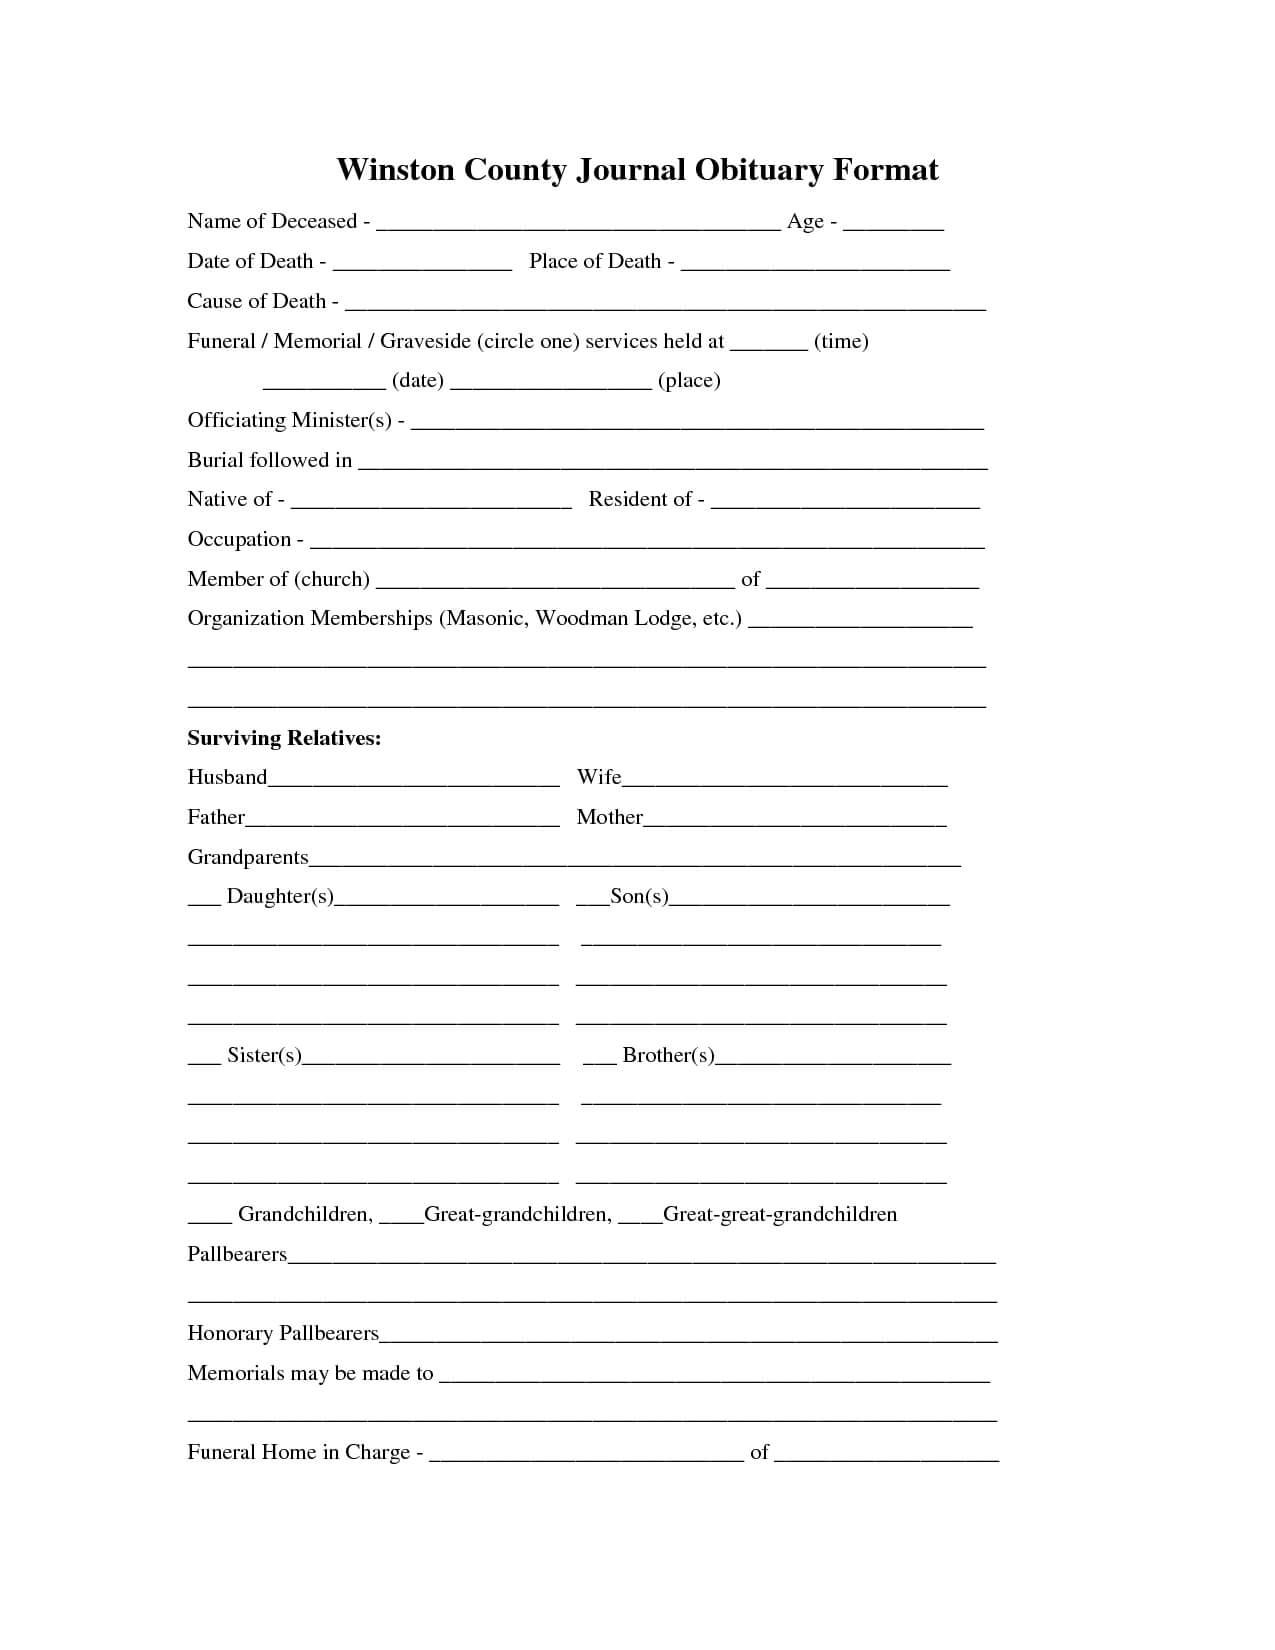 Printable Obituary Template | Fill In The Blank Obituary Pertaining To Fill In The Blank Obituary Template